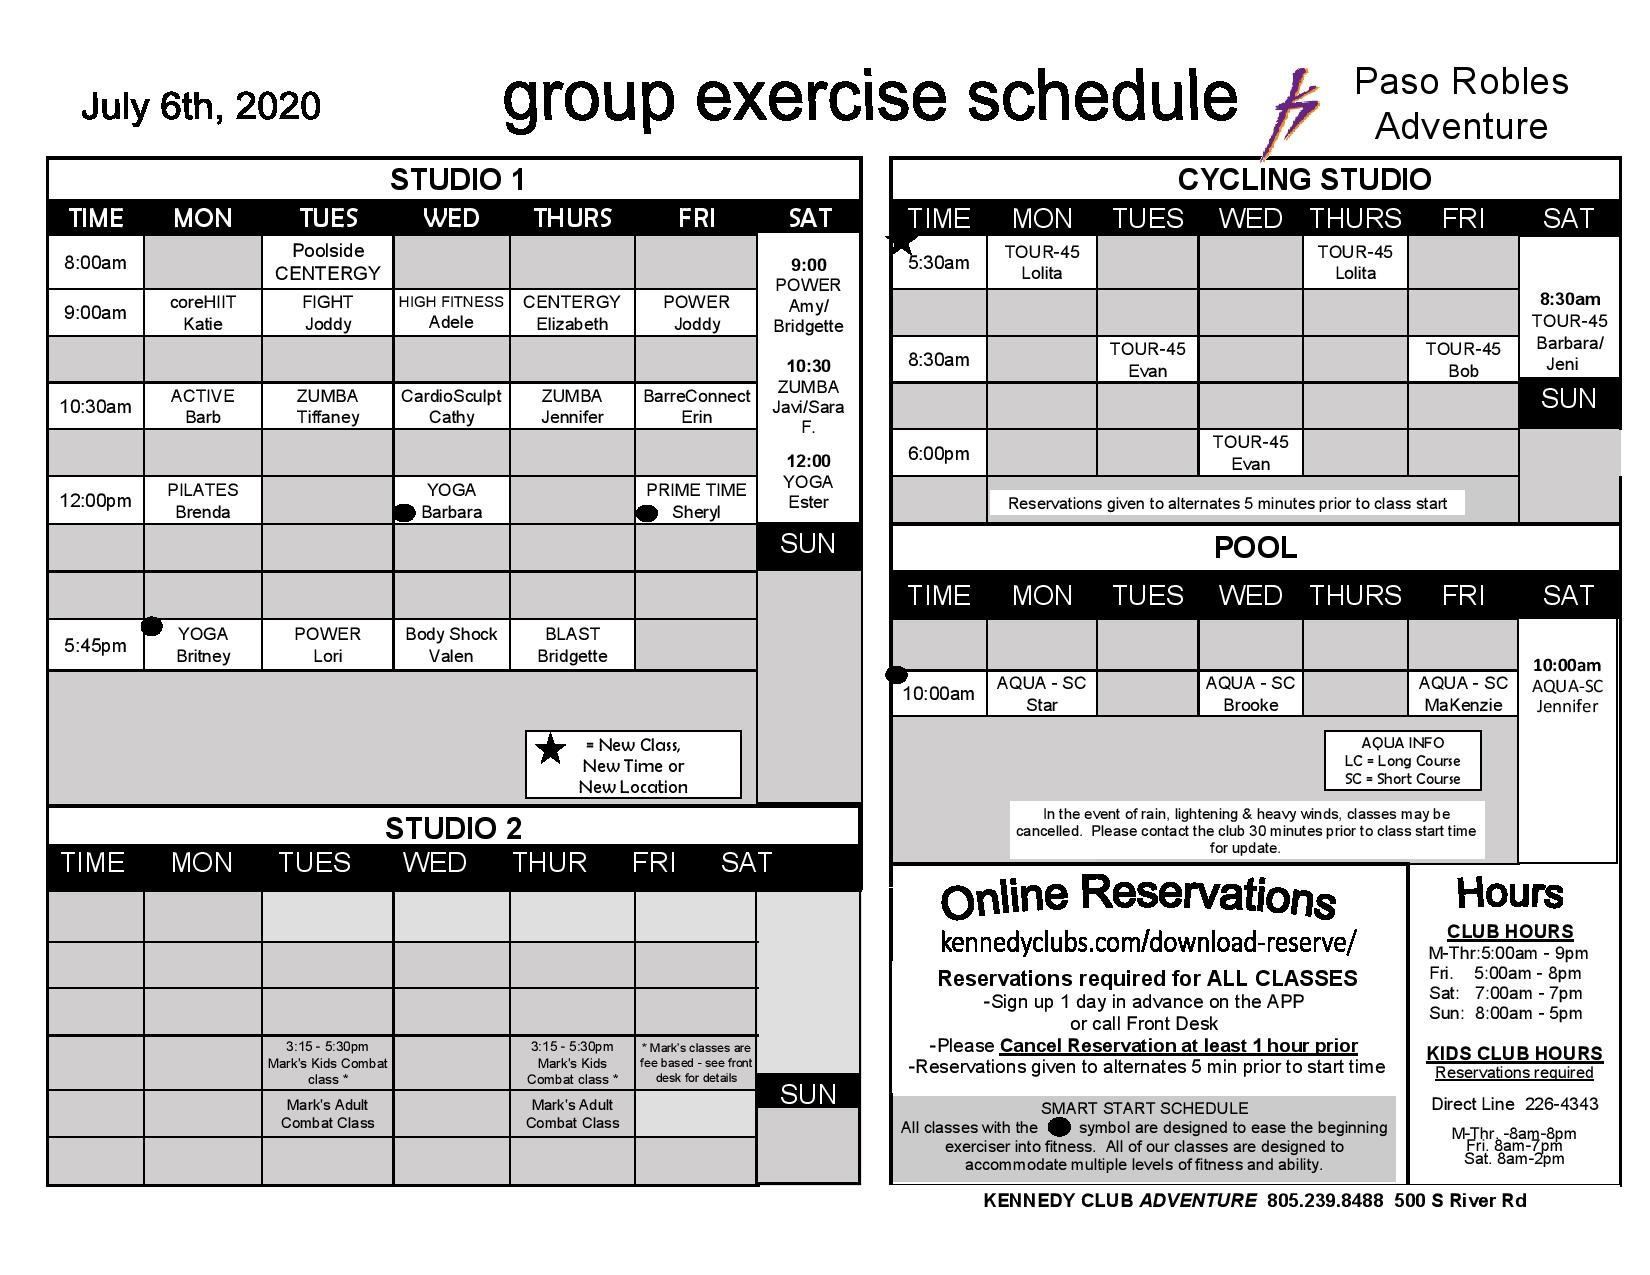 KCF-Paso Robles Group Exercise Schedule 7-7-20